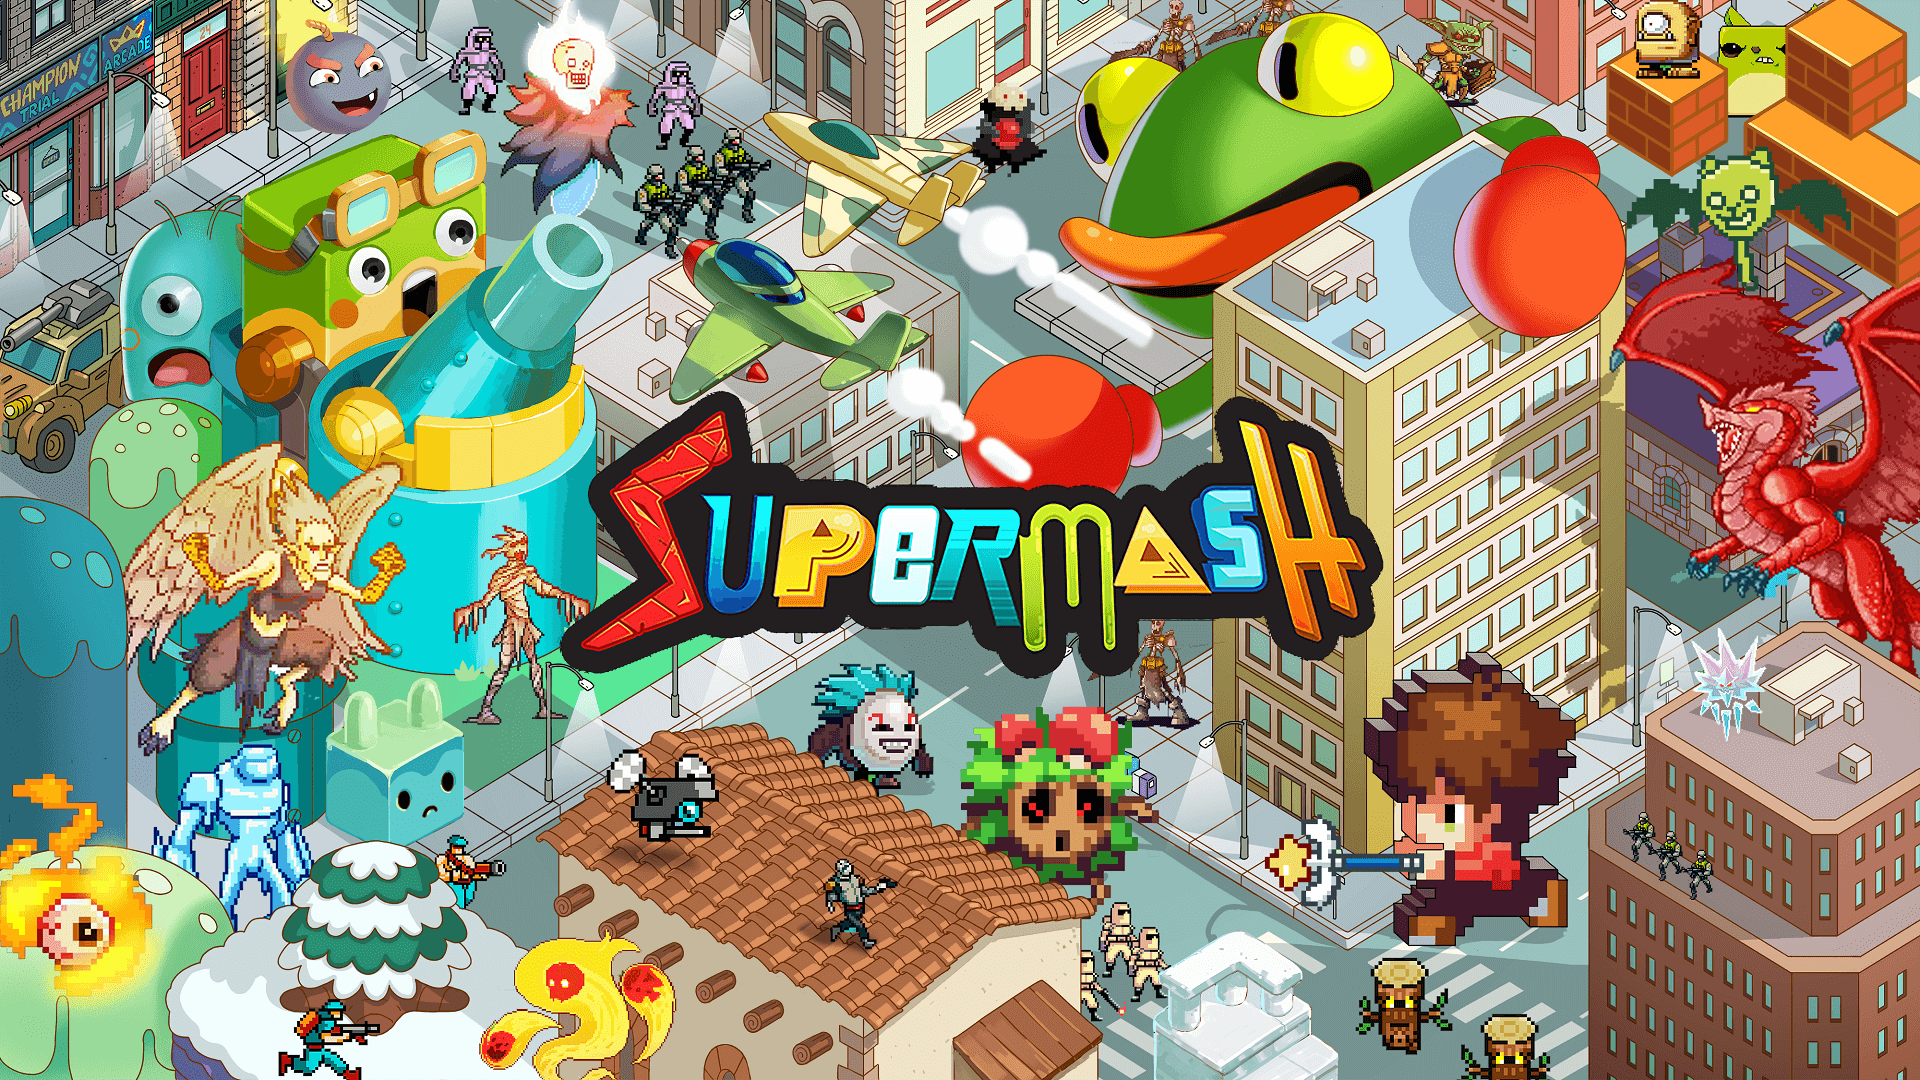 SuperMash Review: A Game that Makes Flops